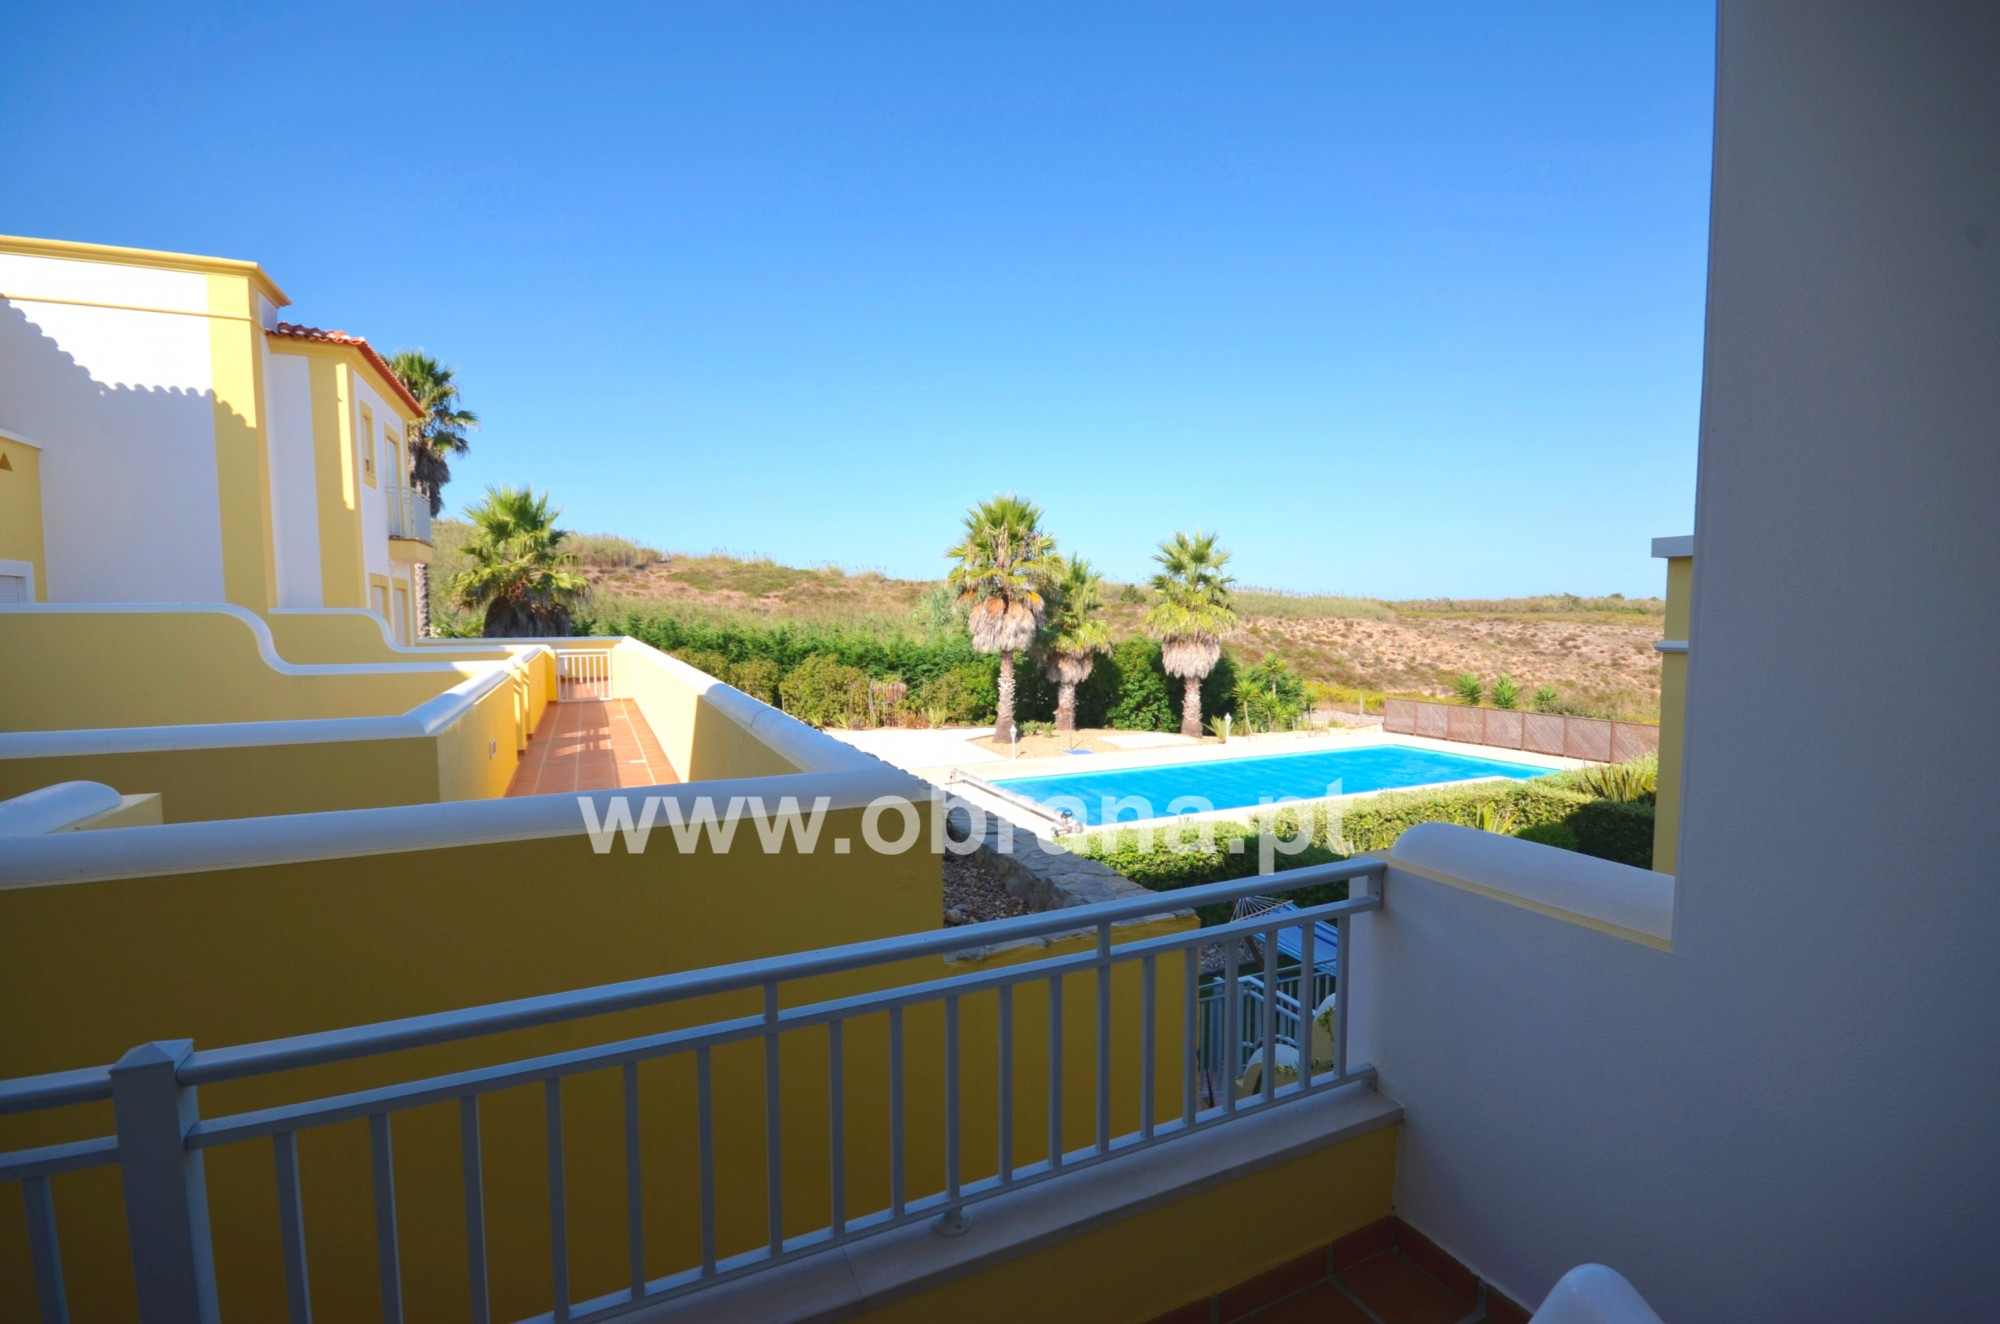 PORTUGAL HOLIDAY RENTAL - VILLA F | SHARED POOL | WIFI | 6 PERSONS | WALK TO BEACH | GROUPS